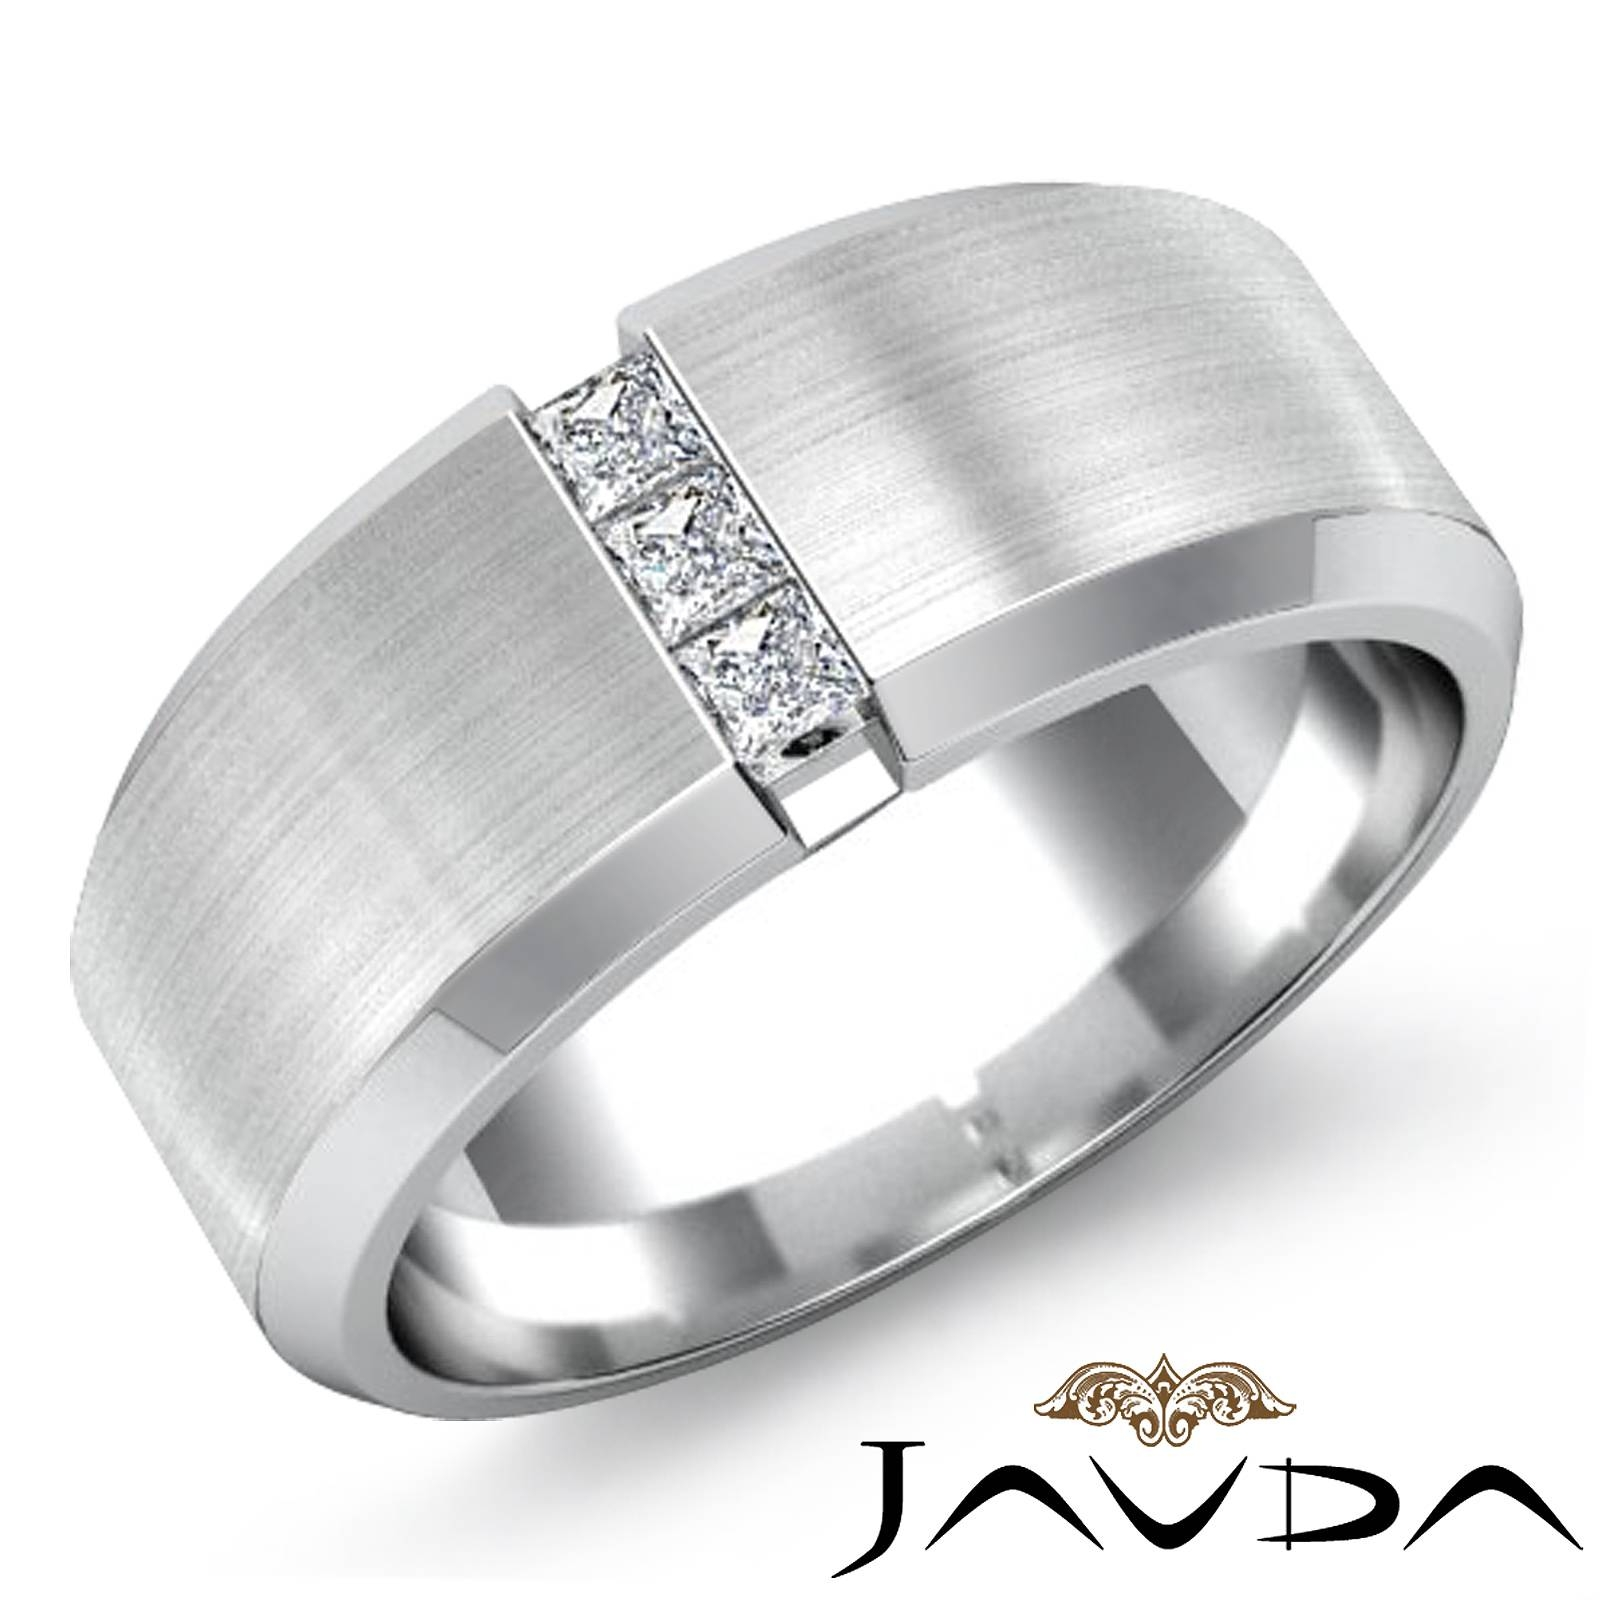 inspirations ring style band bands floral engagement of wedding styles ctw fashion carat awesome in new white gold diamond